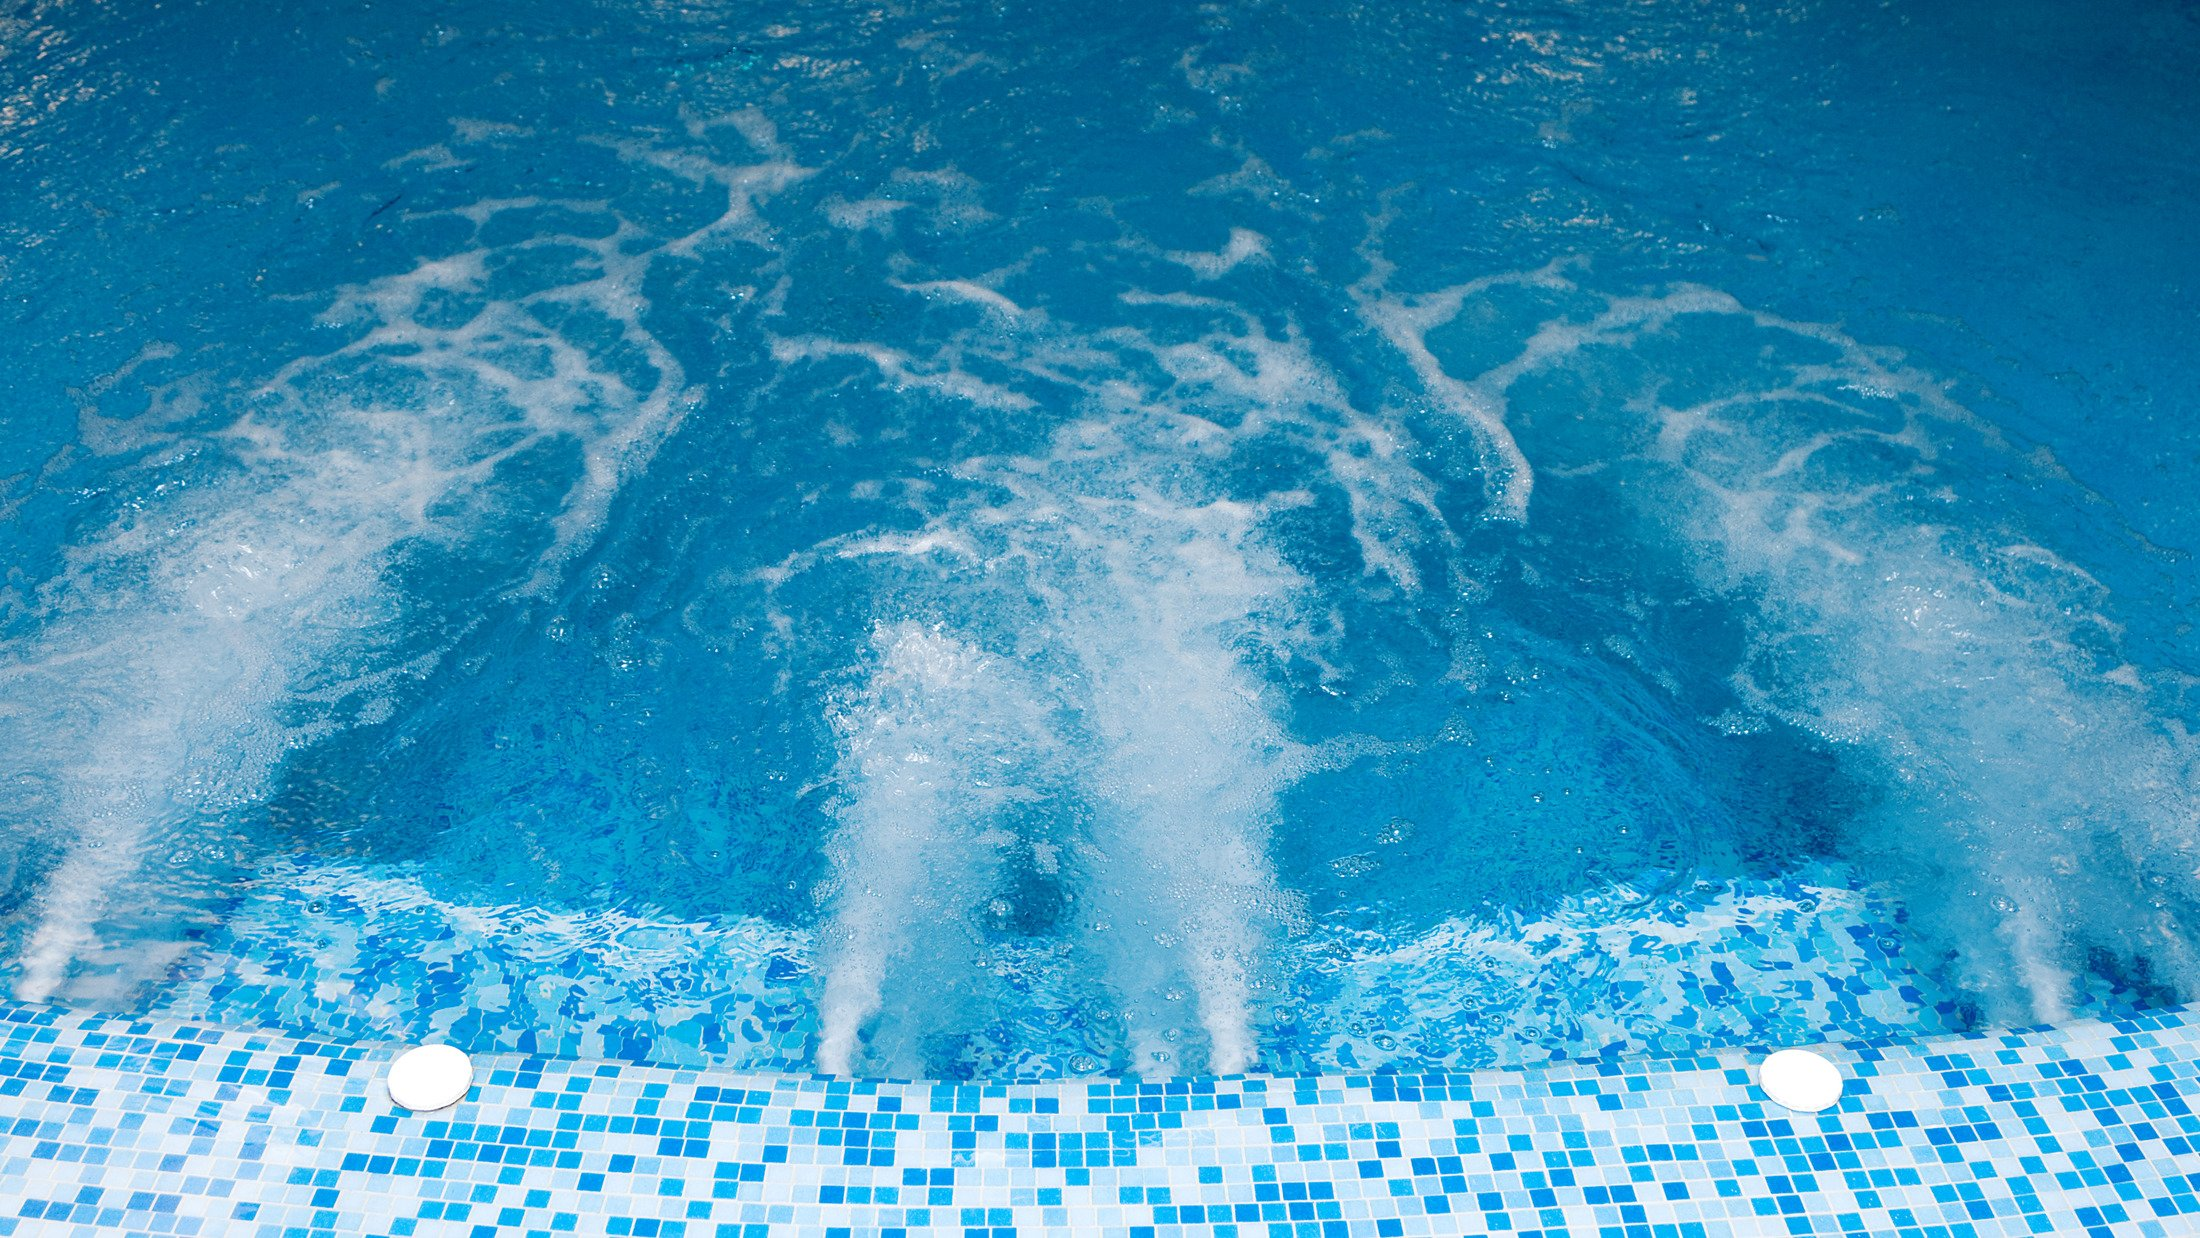 300063_swimming-pool_shutterstock_32082511-Hybris